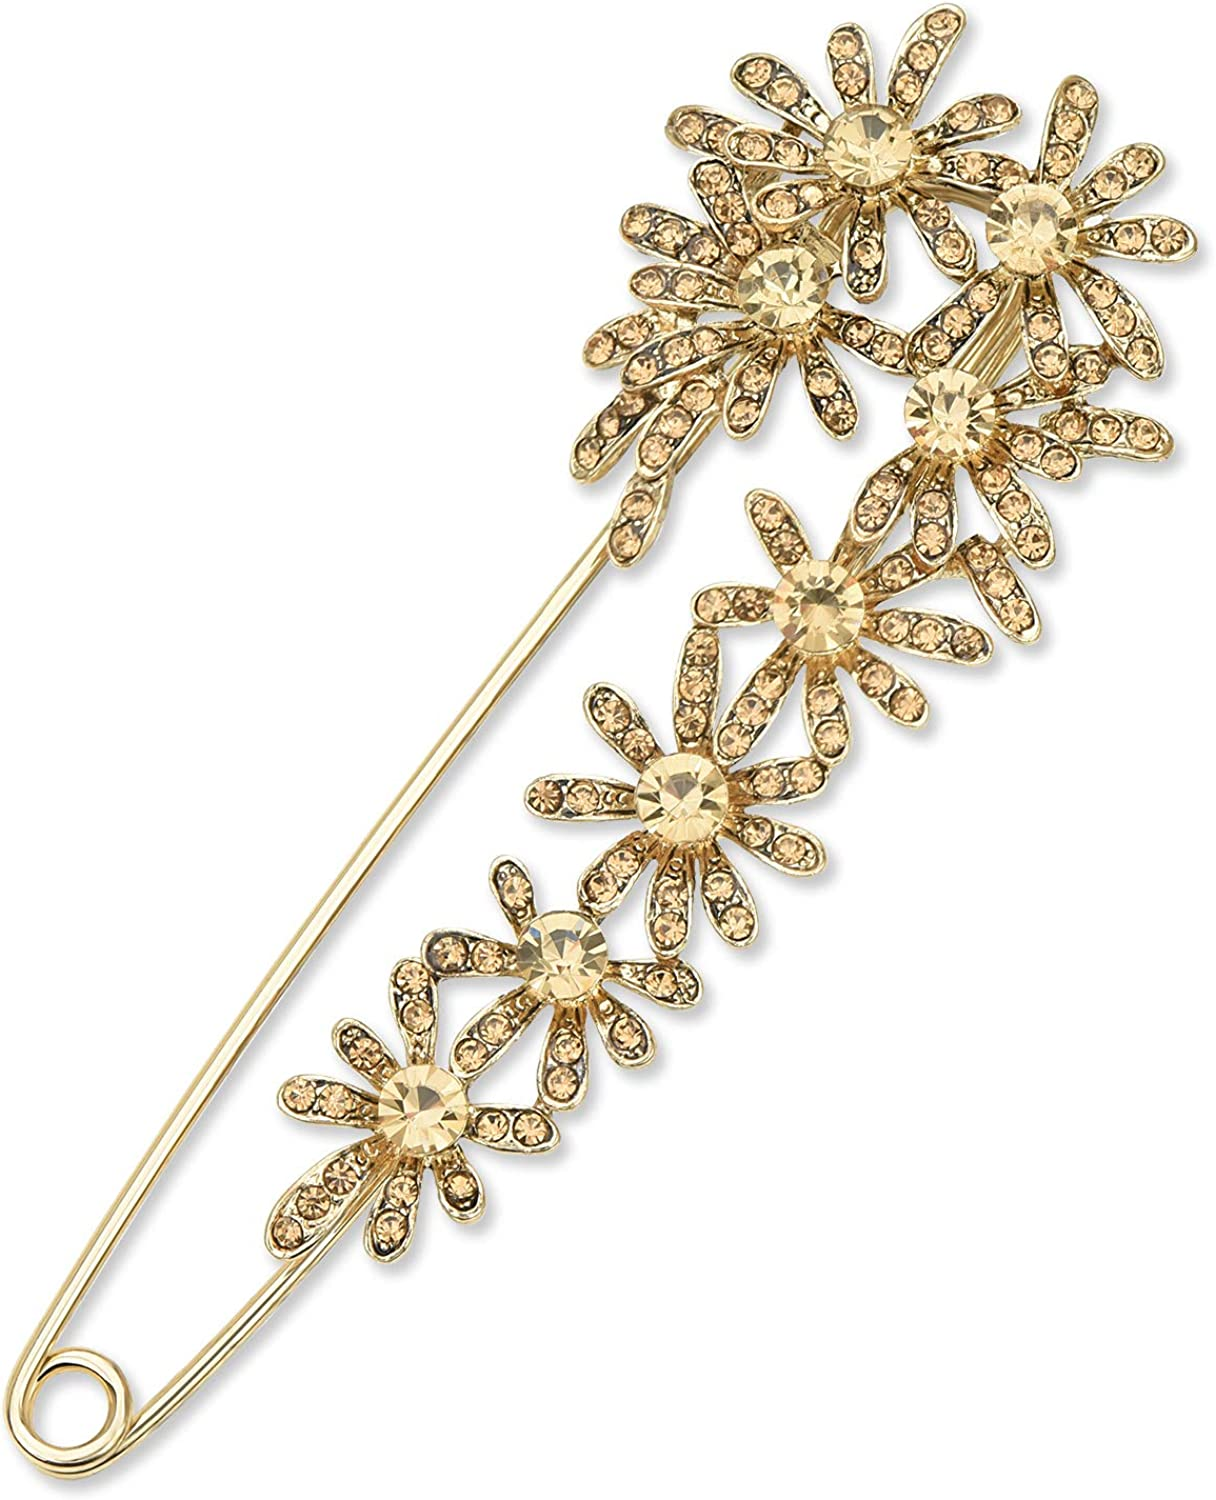 YYBONNIE Vintage Crystal Daisy Flower Large Safety Pin Brooch for Women Cardigan Hat Scarf Suit Sweater Pins Decorative Safety Pins